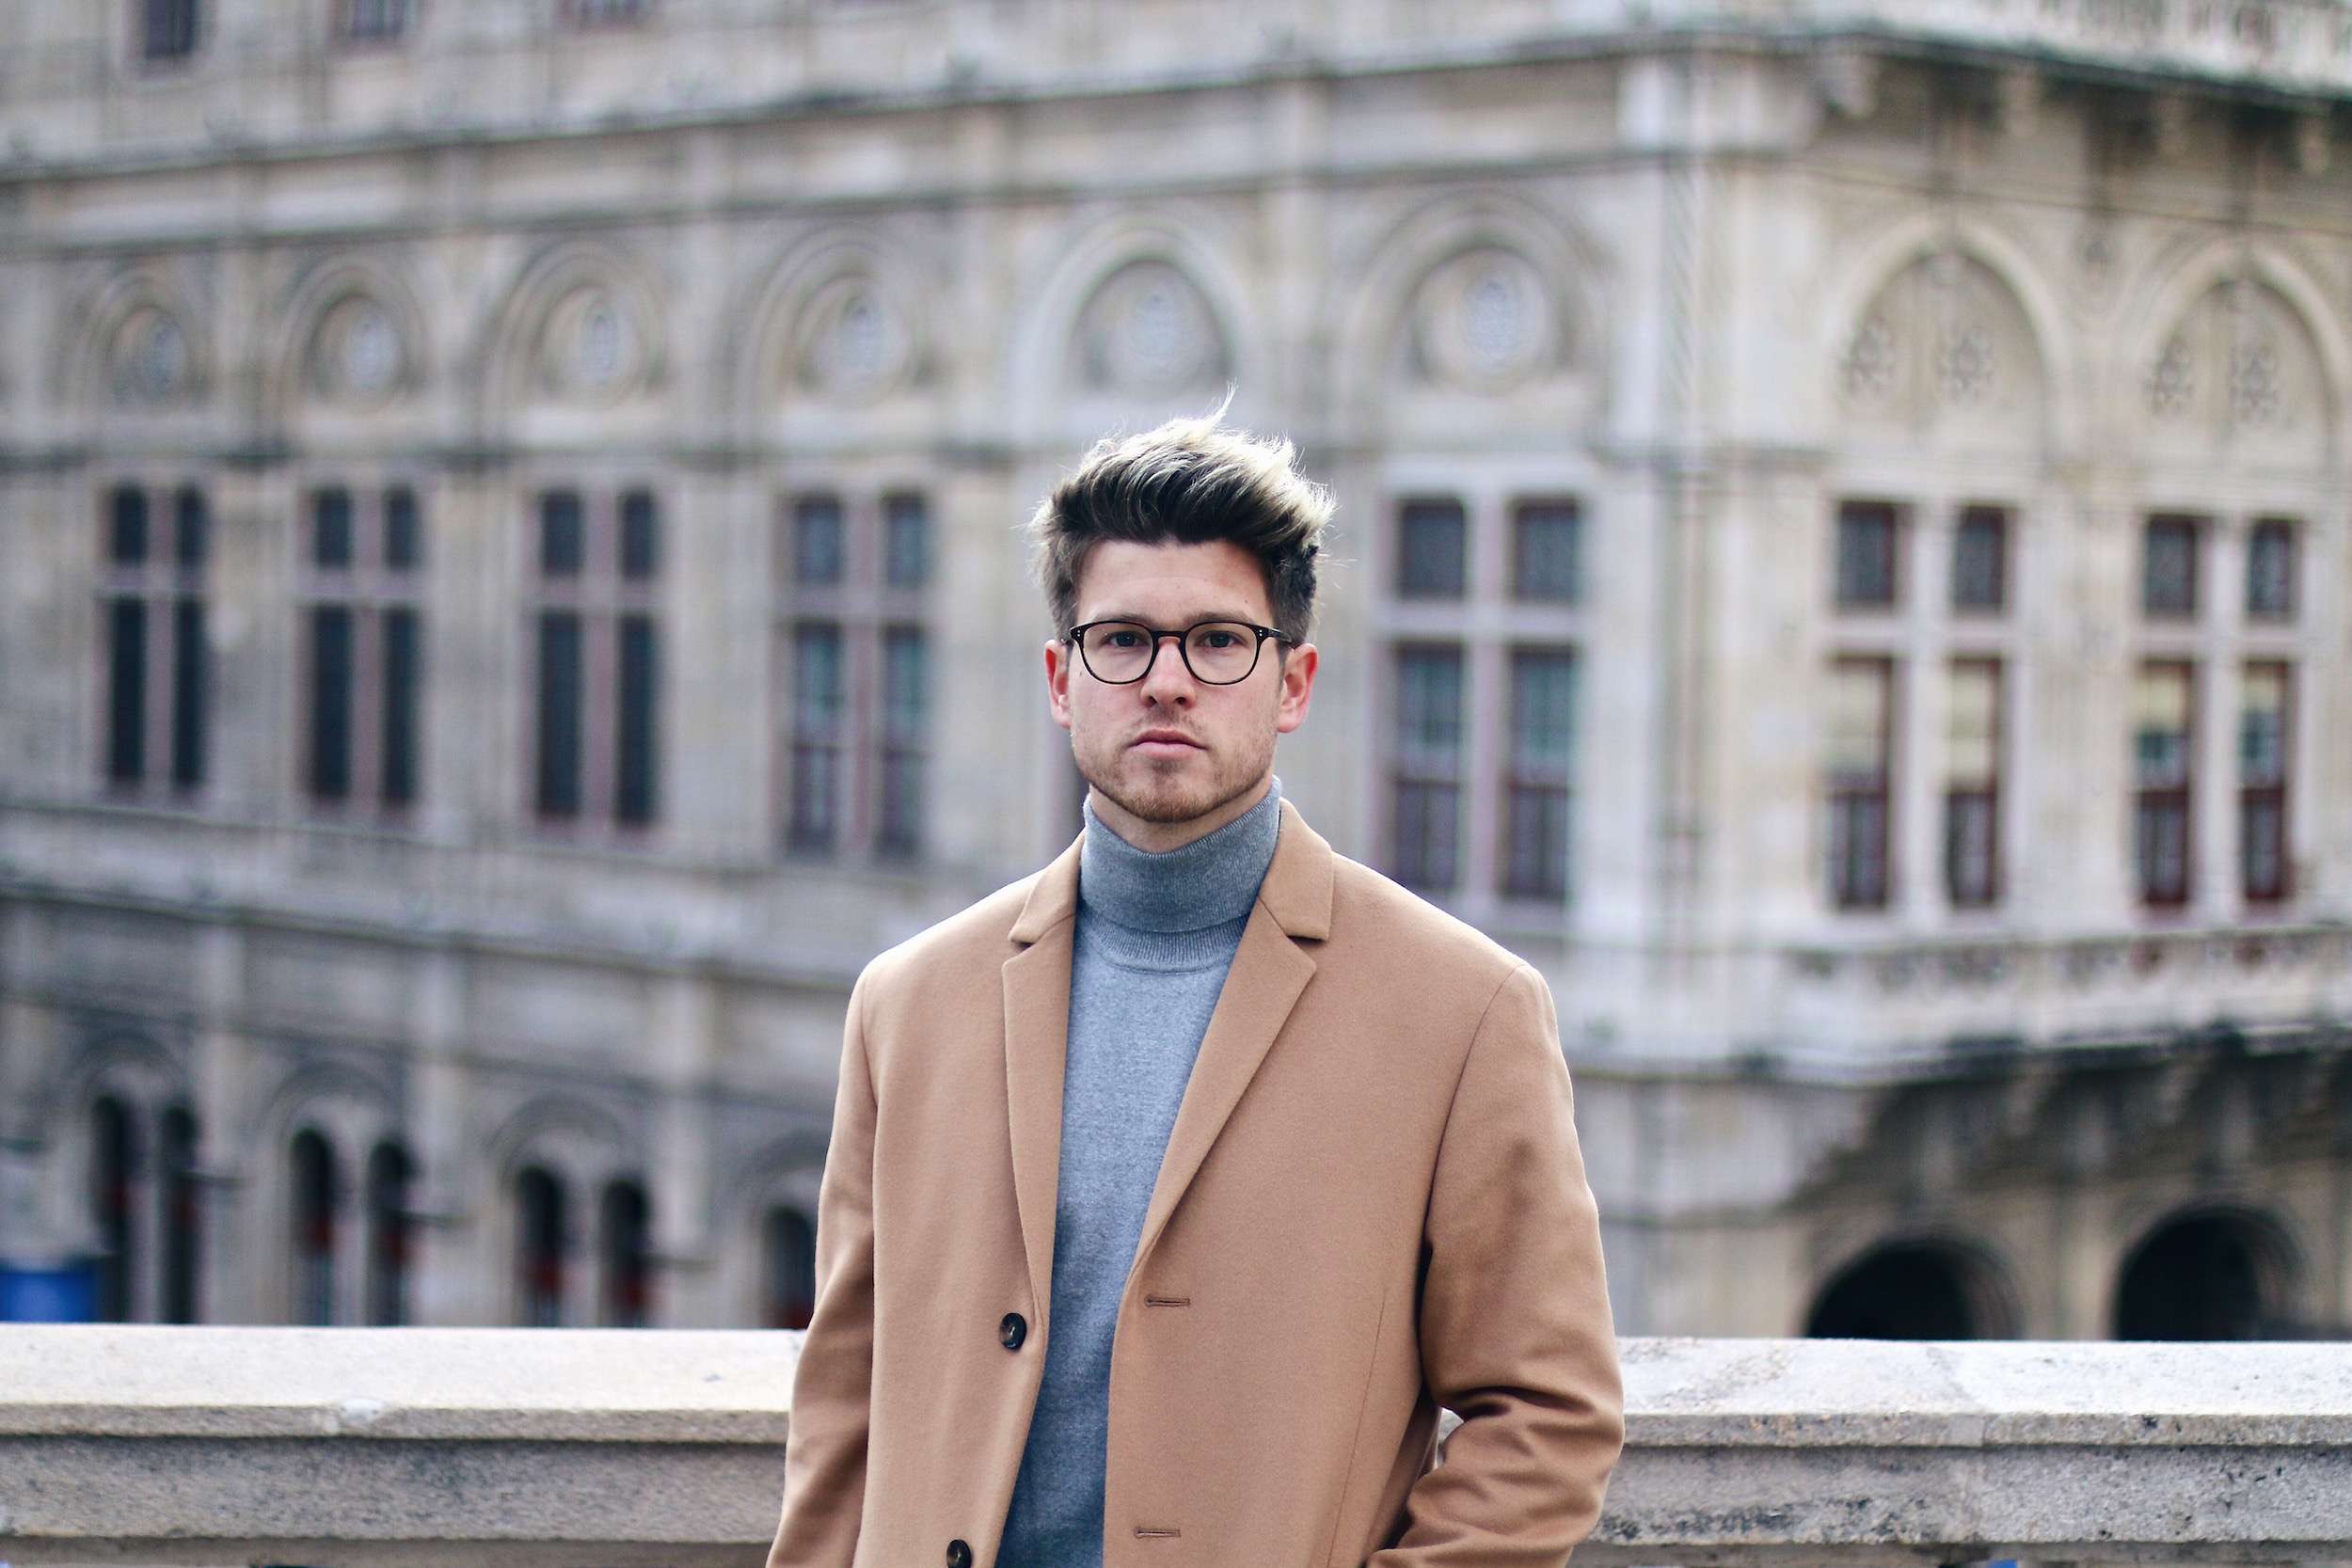 Peek & Cloppenburg Online Shop Launch Austria_Outfit Calvin Klein Camel Coat by Meanwhile in Awesometown_Austrian Mens Fashion and Lifestyle Blog 5